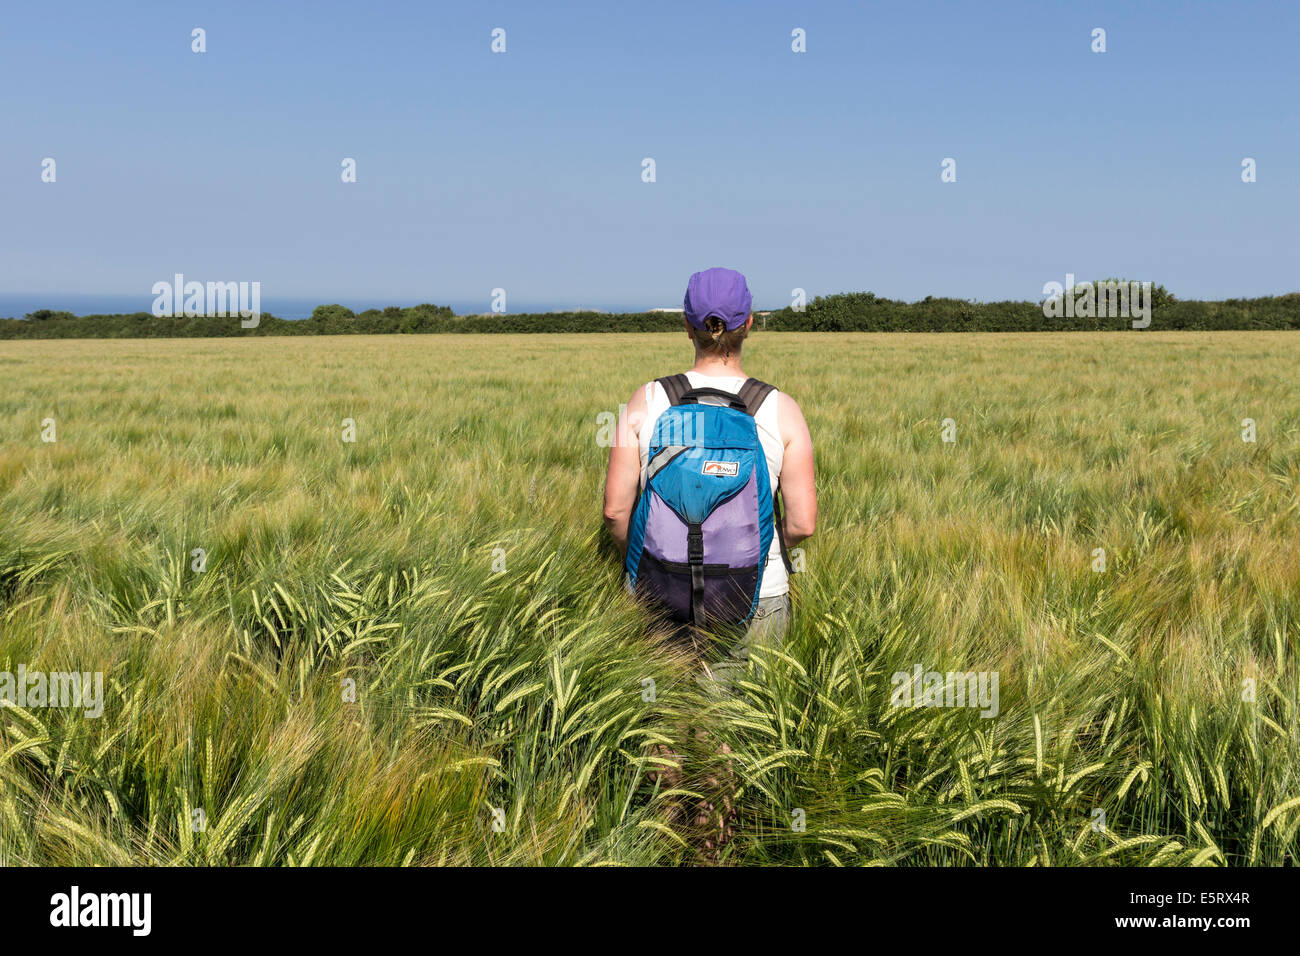 Walker on a Public Footpath Obstructed with Crops Near Boscastle in Cornwall England - Stock Image